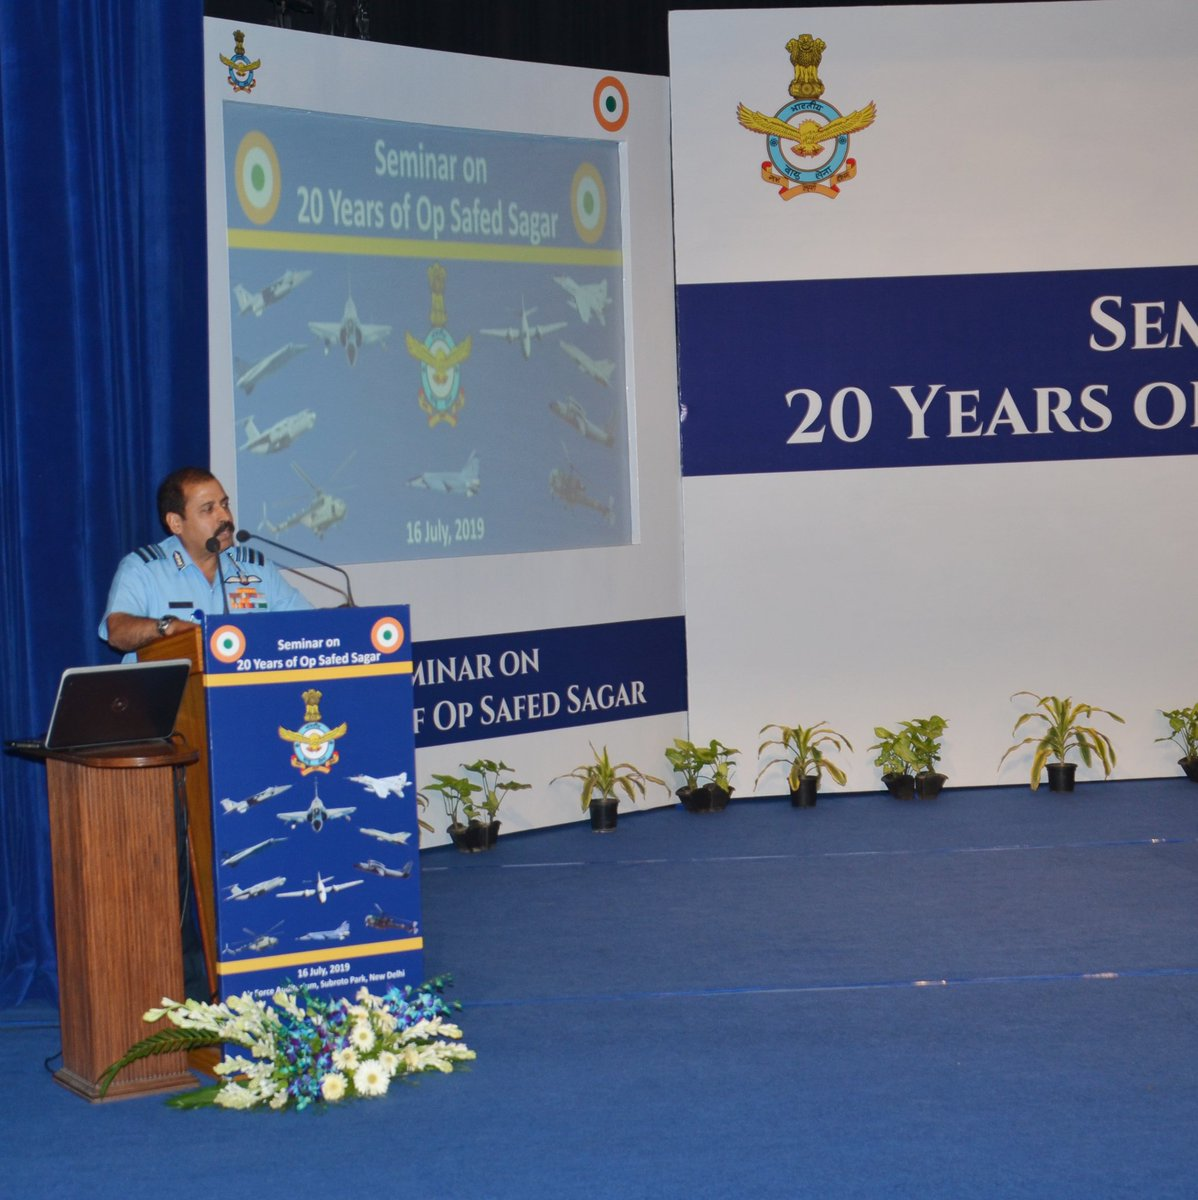 #RememberingKargil: Air Marshal RKS Bhadauria, Vice Chief of the Air Staff delivered the closing address during the Seminar on 20 Years of Op Safed Sagar held at Air Force Auditorium, New Delhi on 16 July 19.